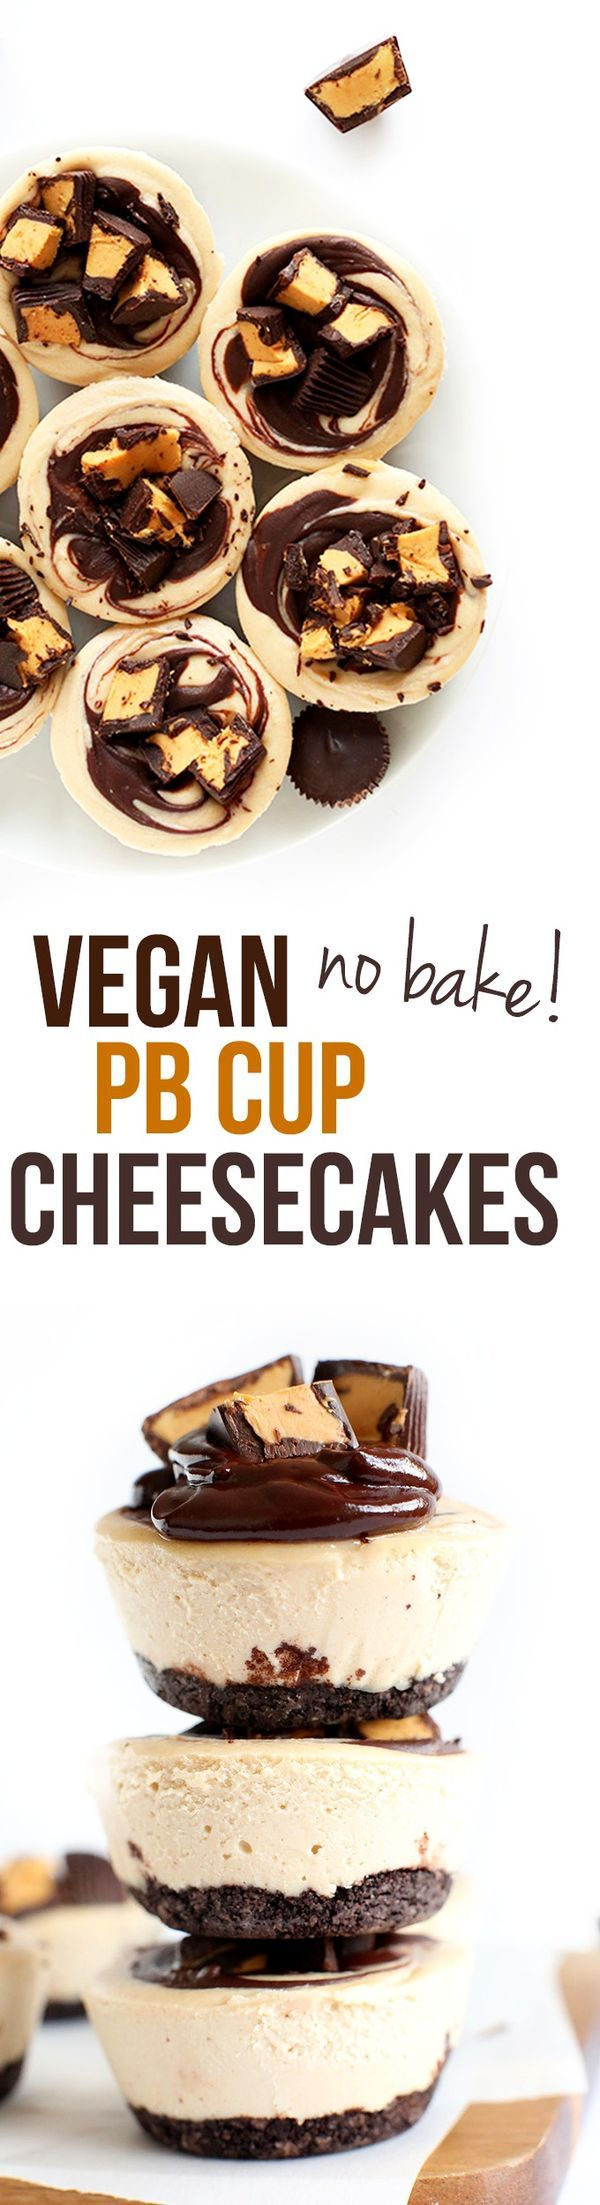 AMAZING no bake cheesecakes loaded with PEANUT BUTTER CUP flavor. 9 ingredients, #vegan and delicious!